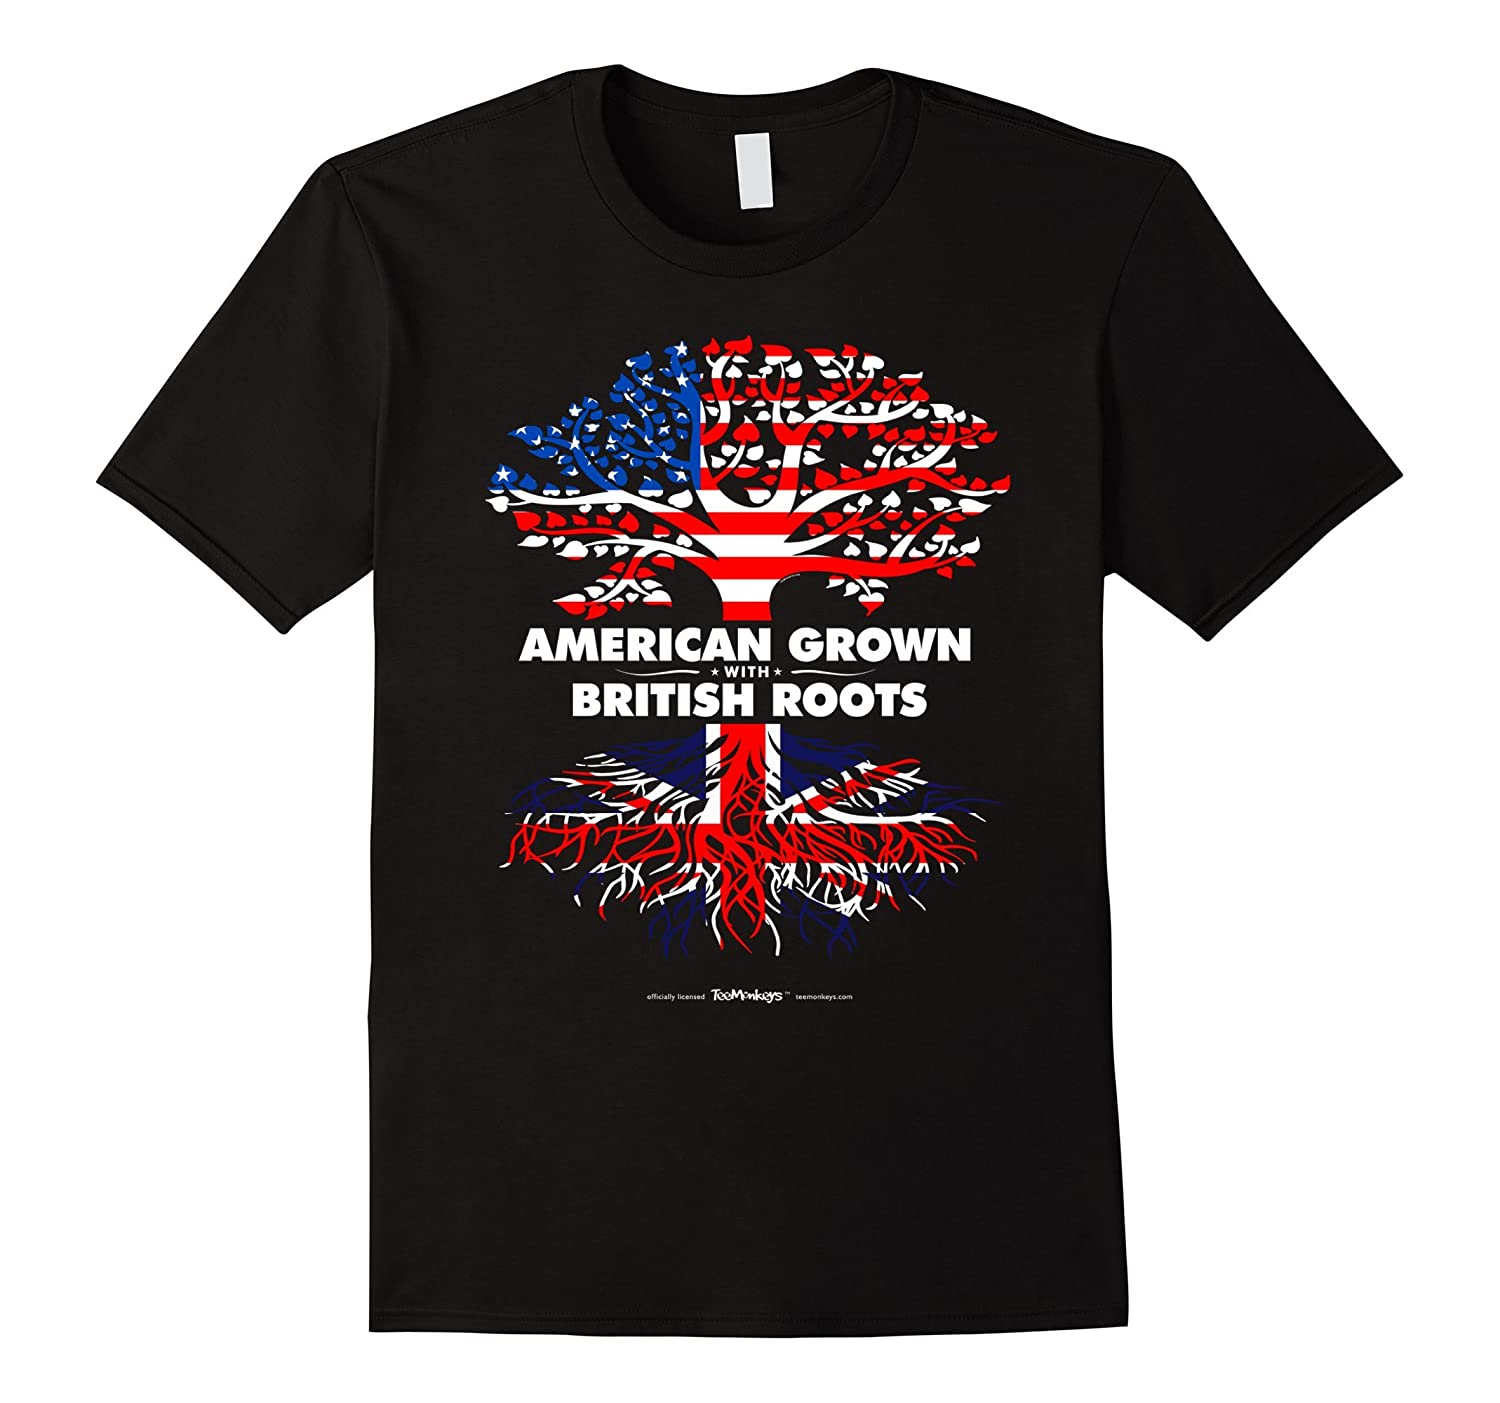 American Grown with British Britain Roots T-Shirt